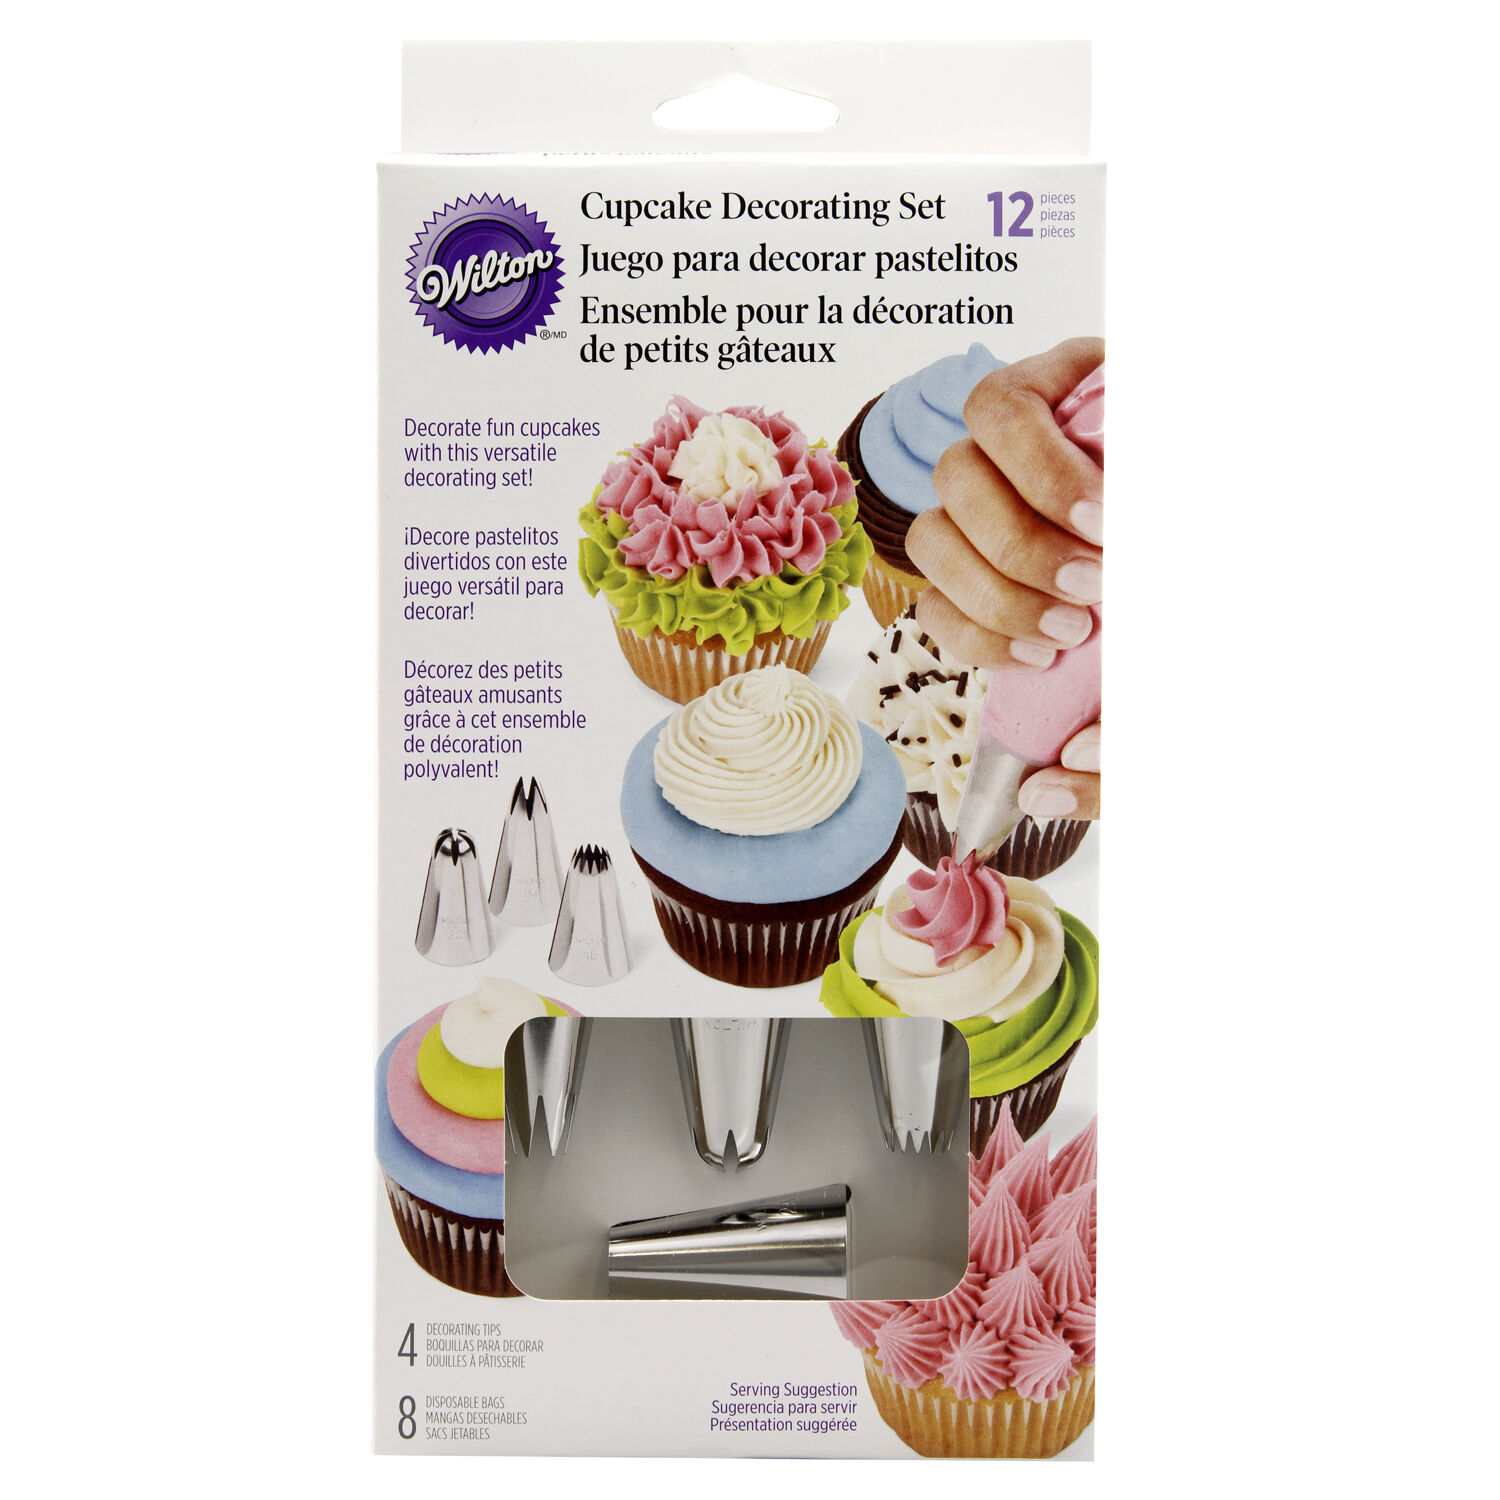 Wilton Cupcake Decorating Kit 12 Pieces   Home Store   More Wilton Cupcake Decorating Kit 12 Pieces